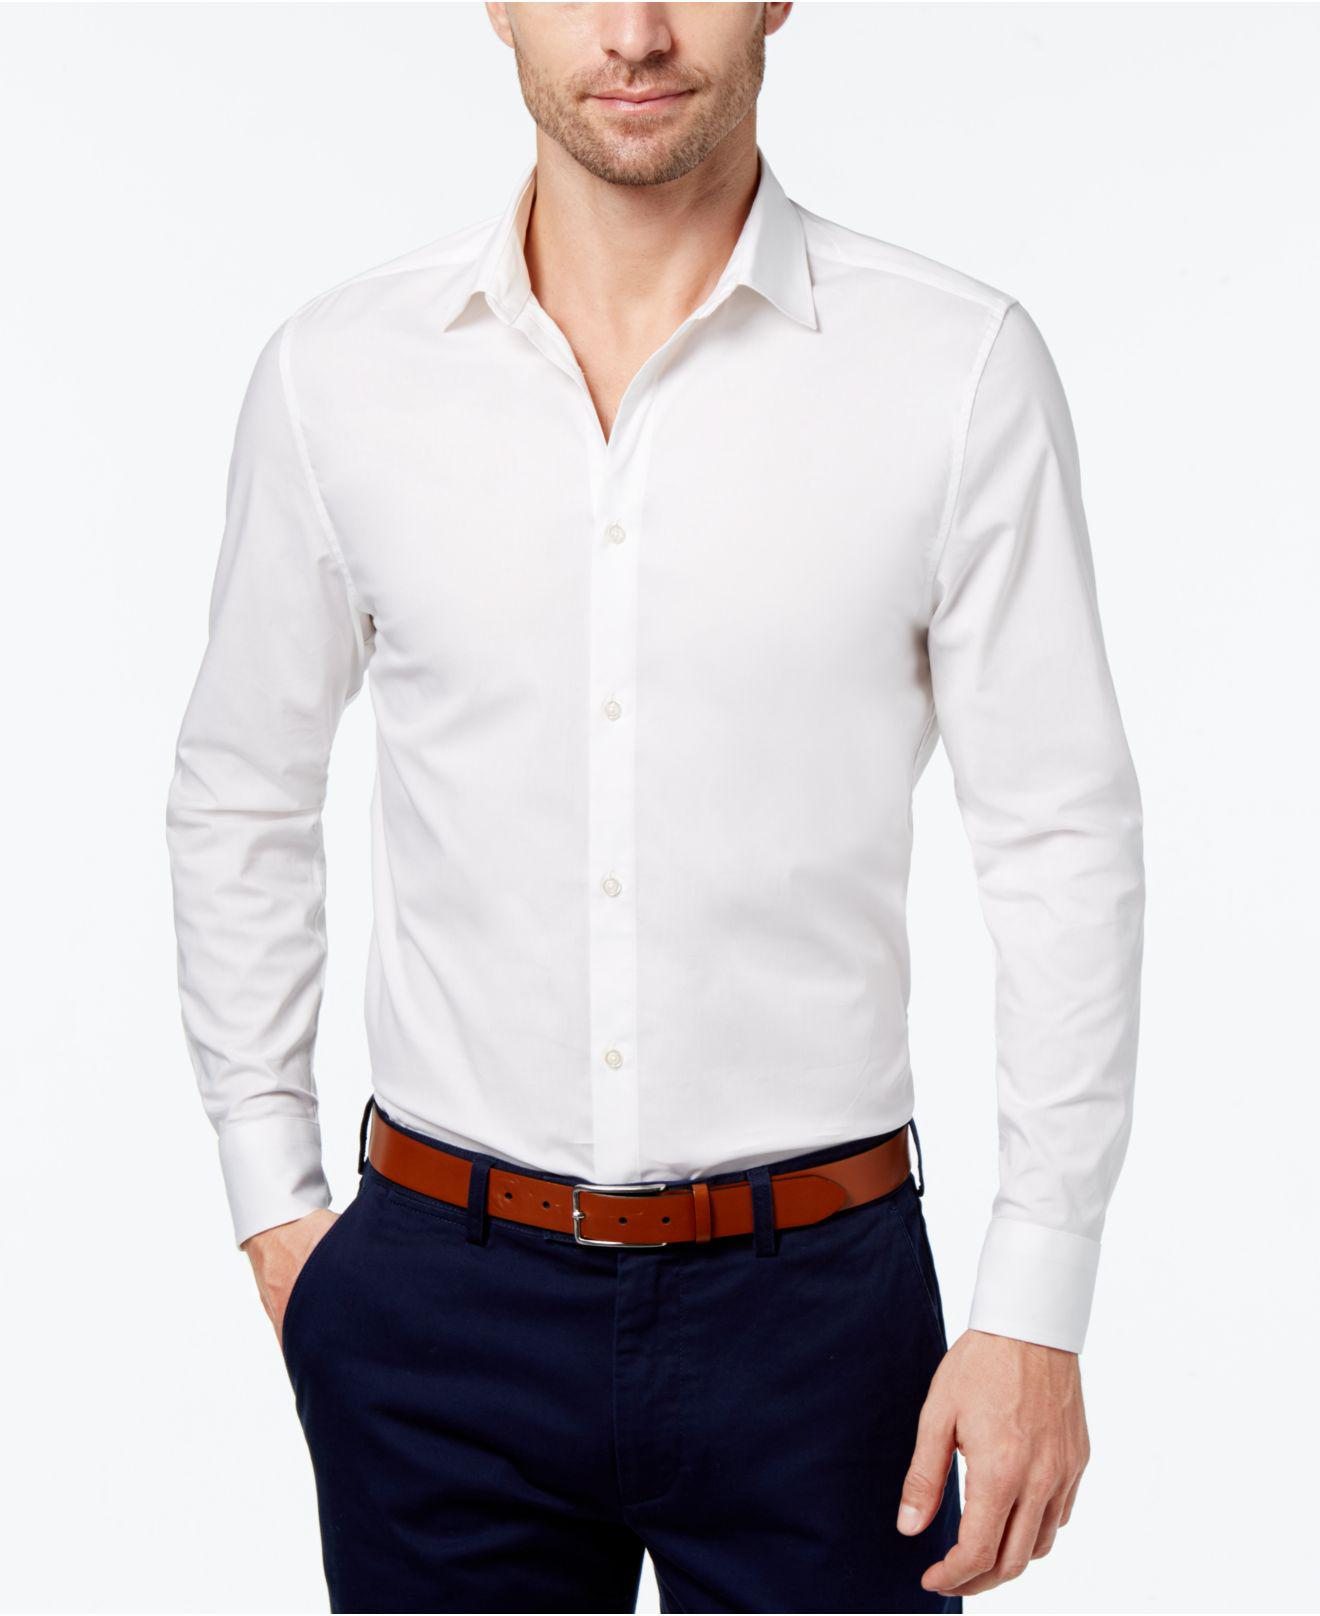 3c9f559d7a5 Lyst - Daniel Hechter Men s Shirt in White for Men